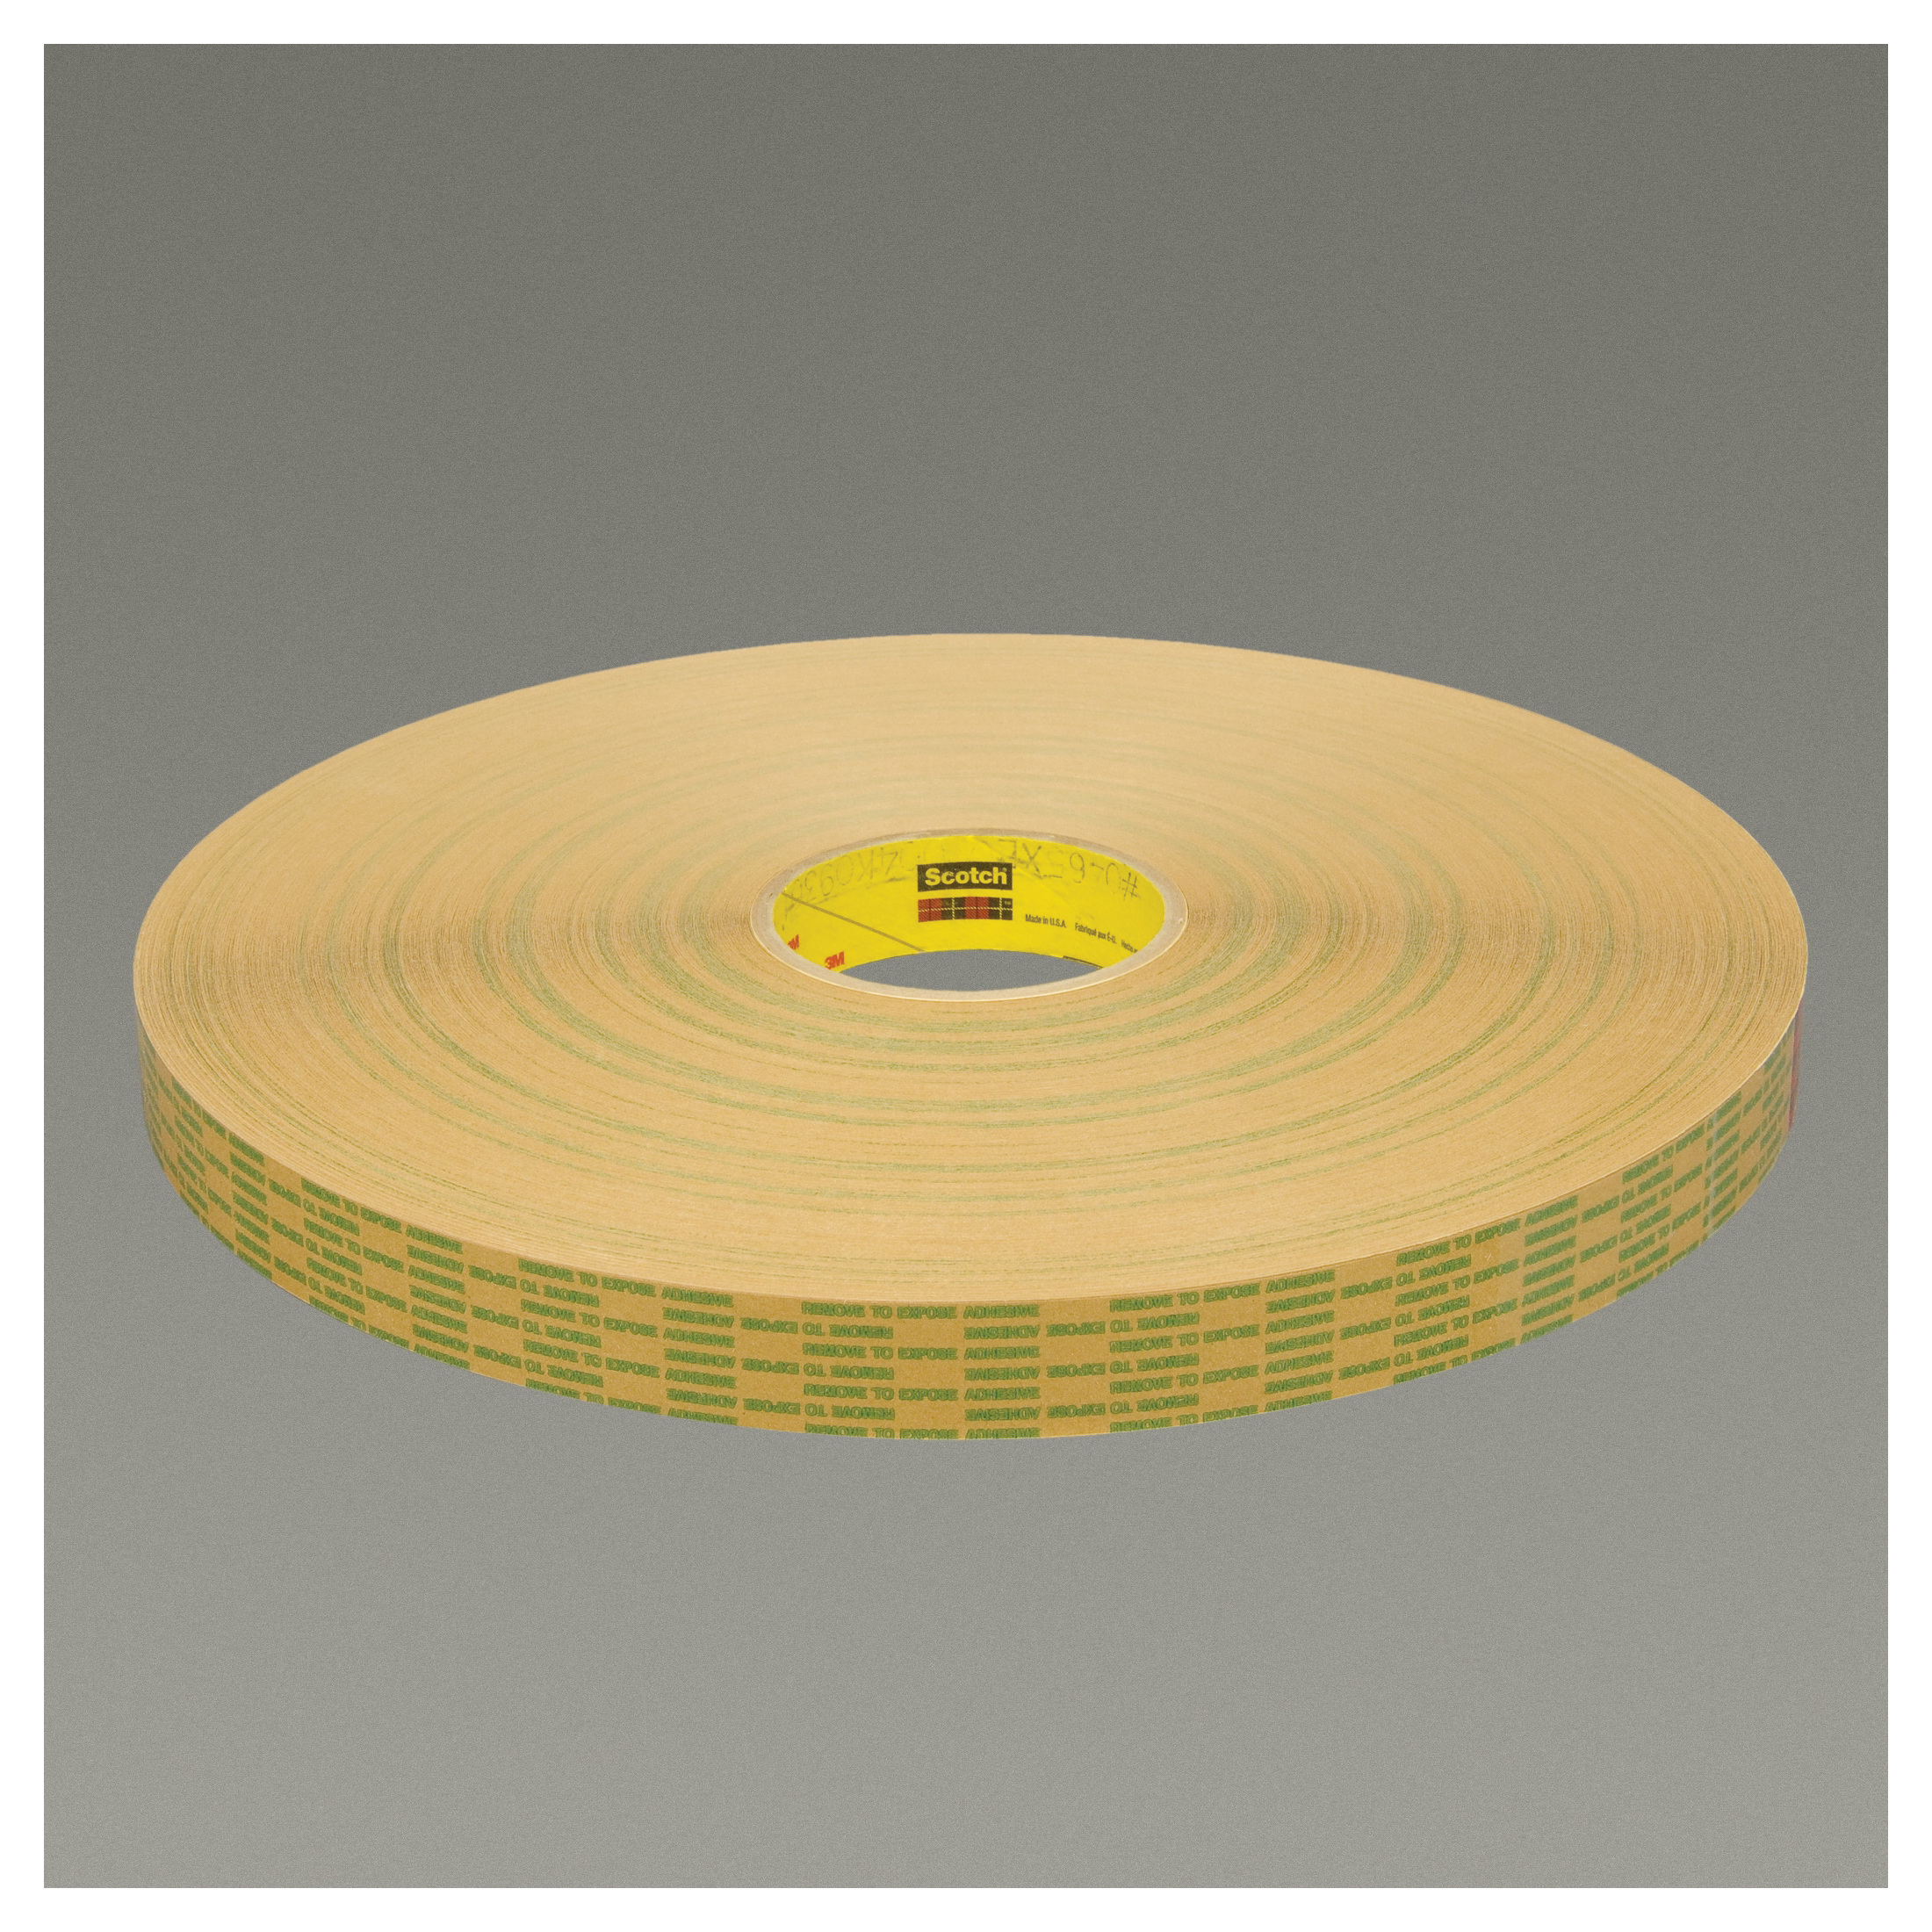 3M™ 021200-11676 Extended Liner Adhesive Transfer Tape, 60 yd L x 1/2 in W, 2 mil THK, 2 mil 400 Acrylic Adhesive, Translucent